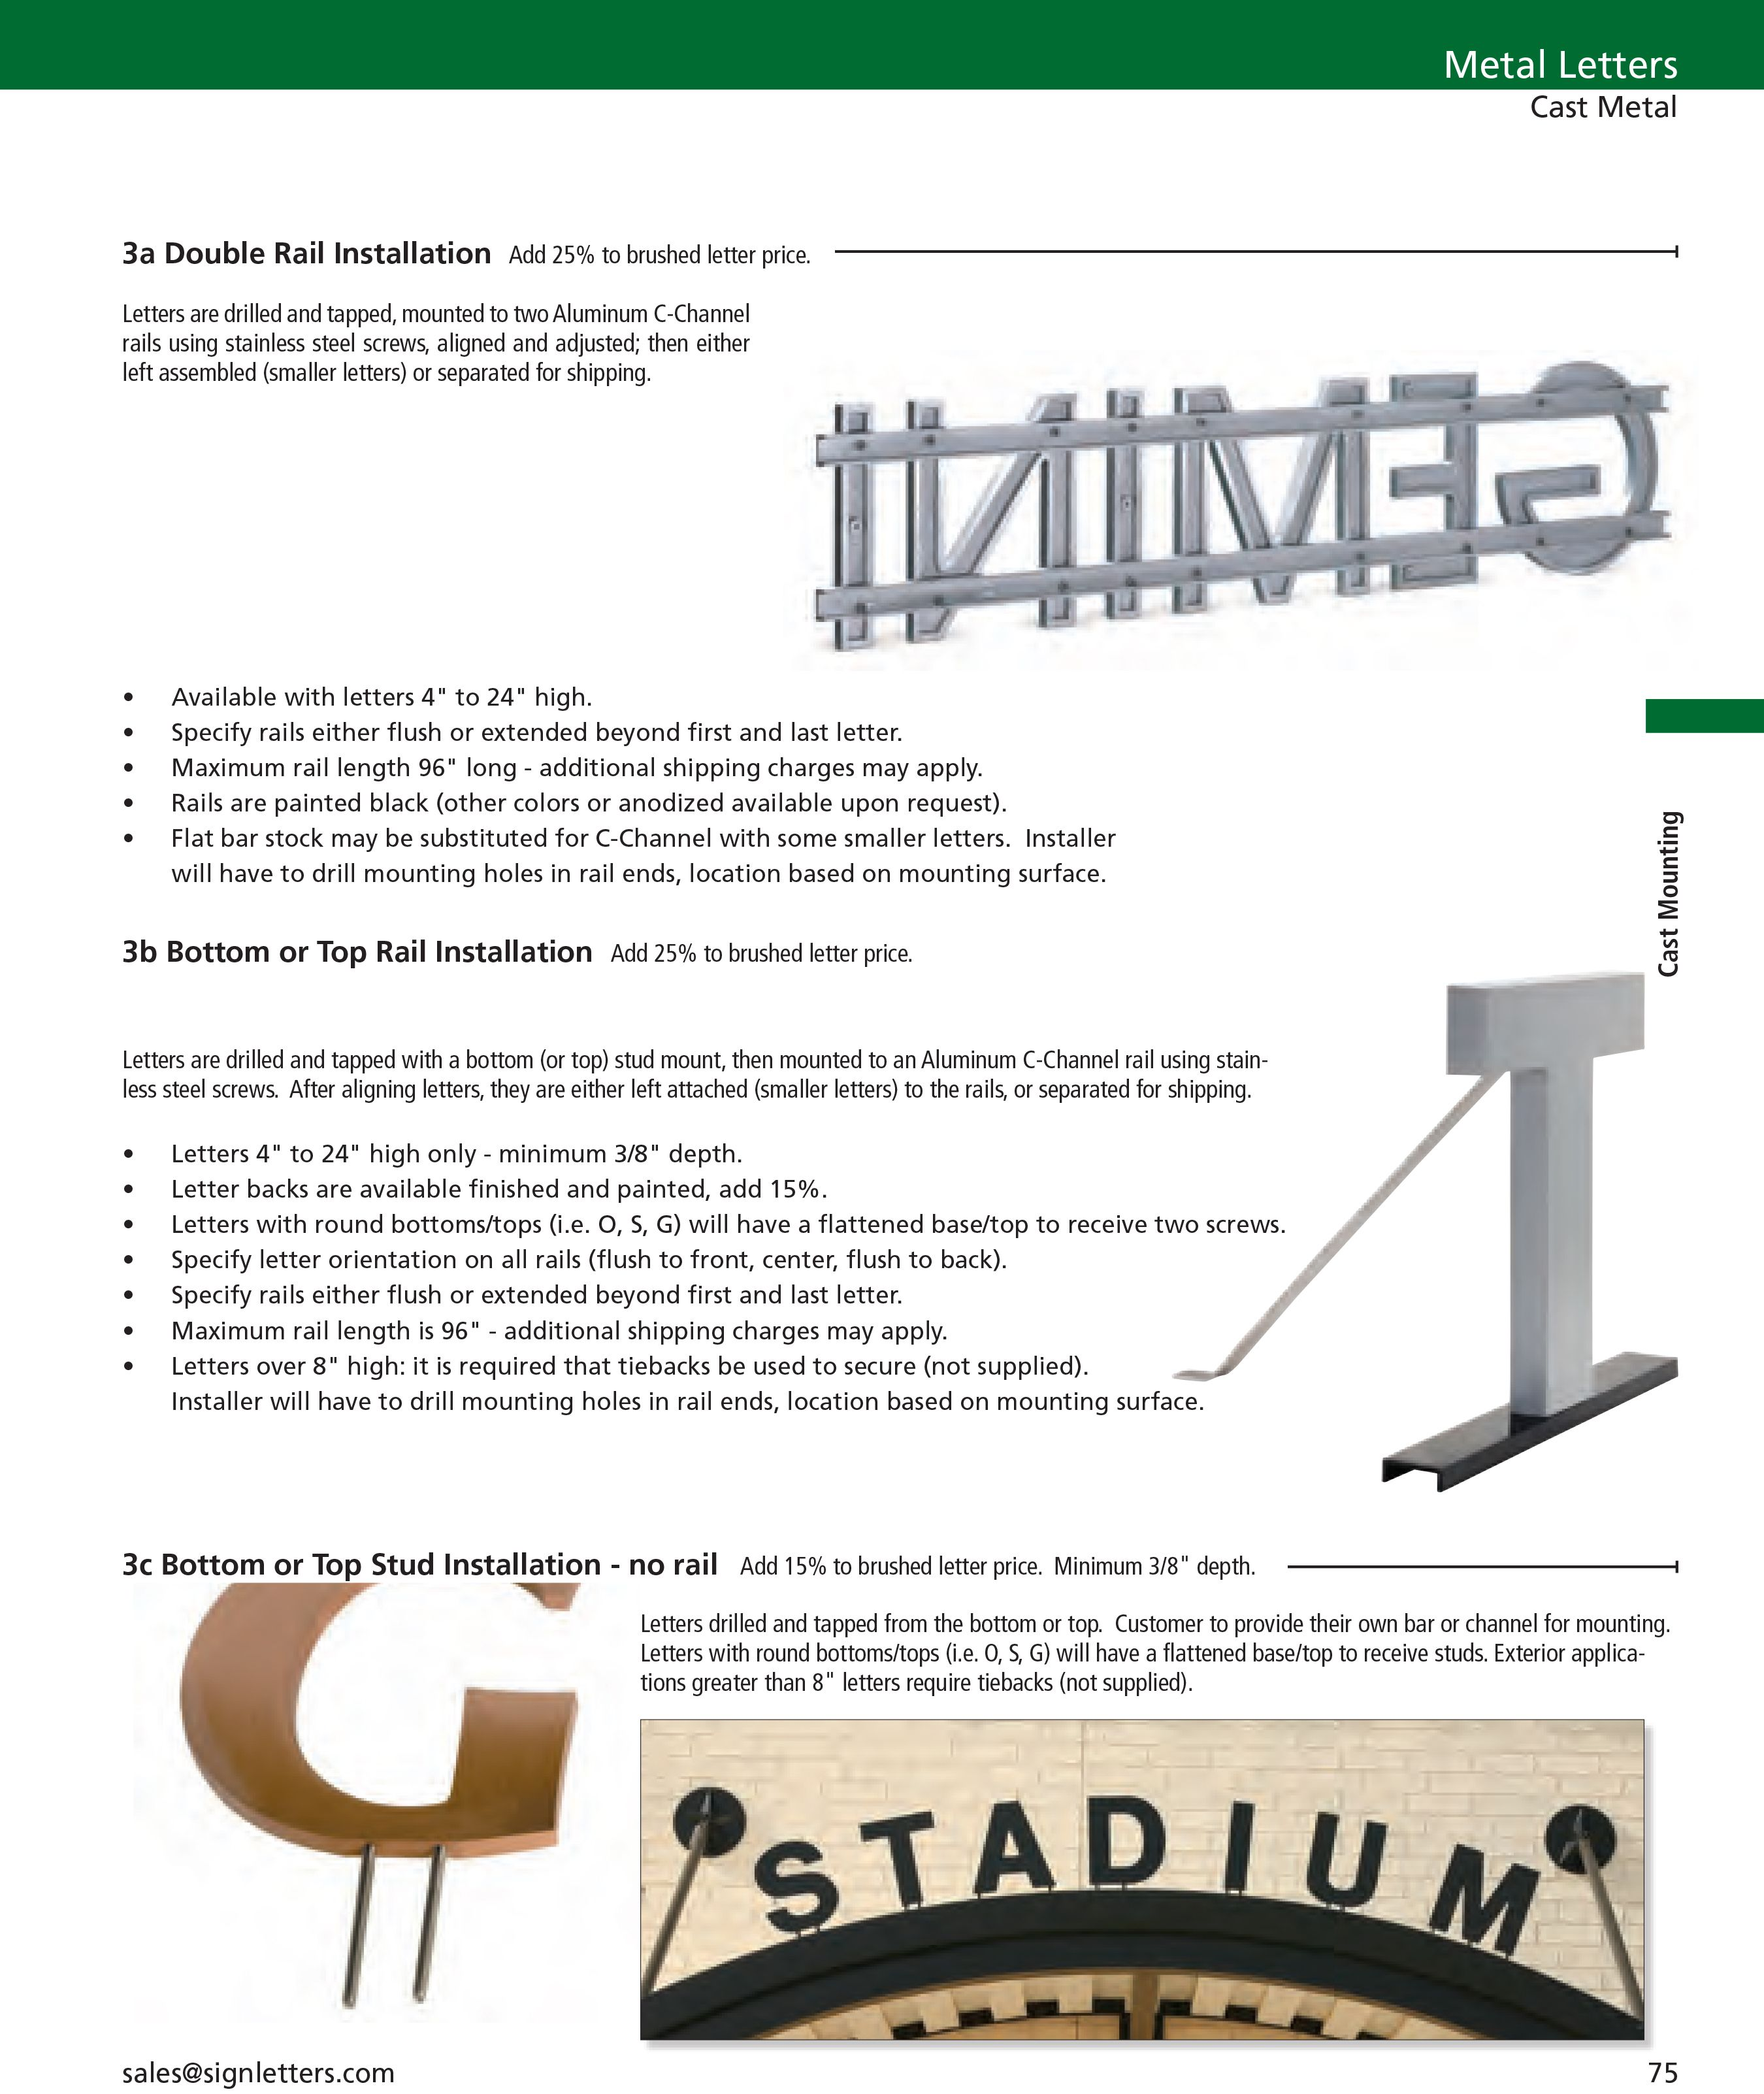 Pin by Suzanne Hopkins on Design Production Metal